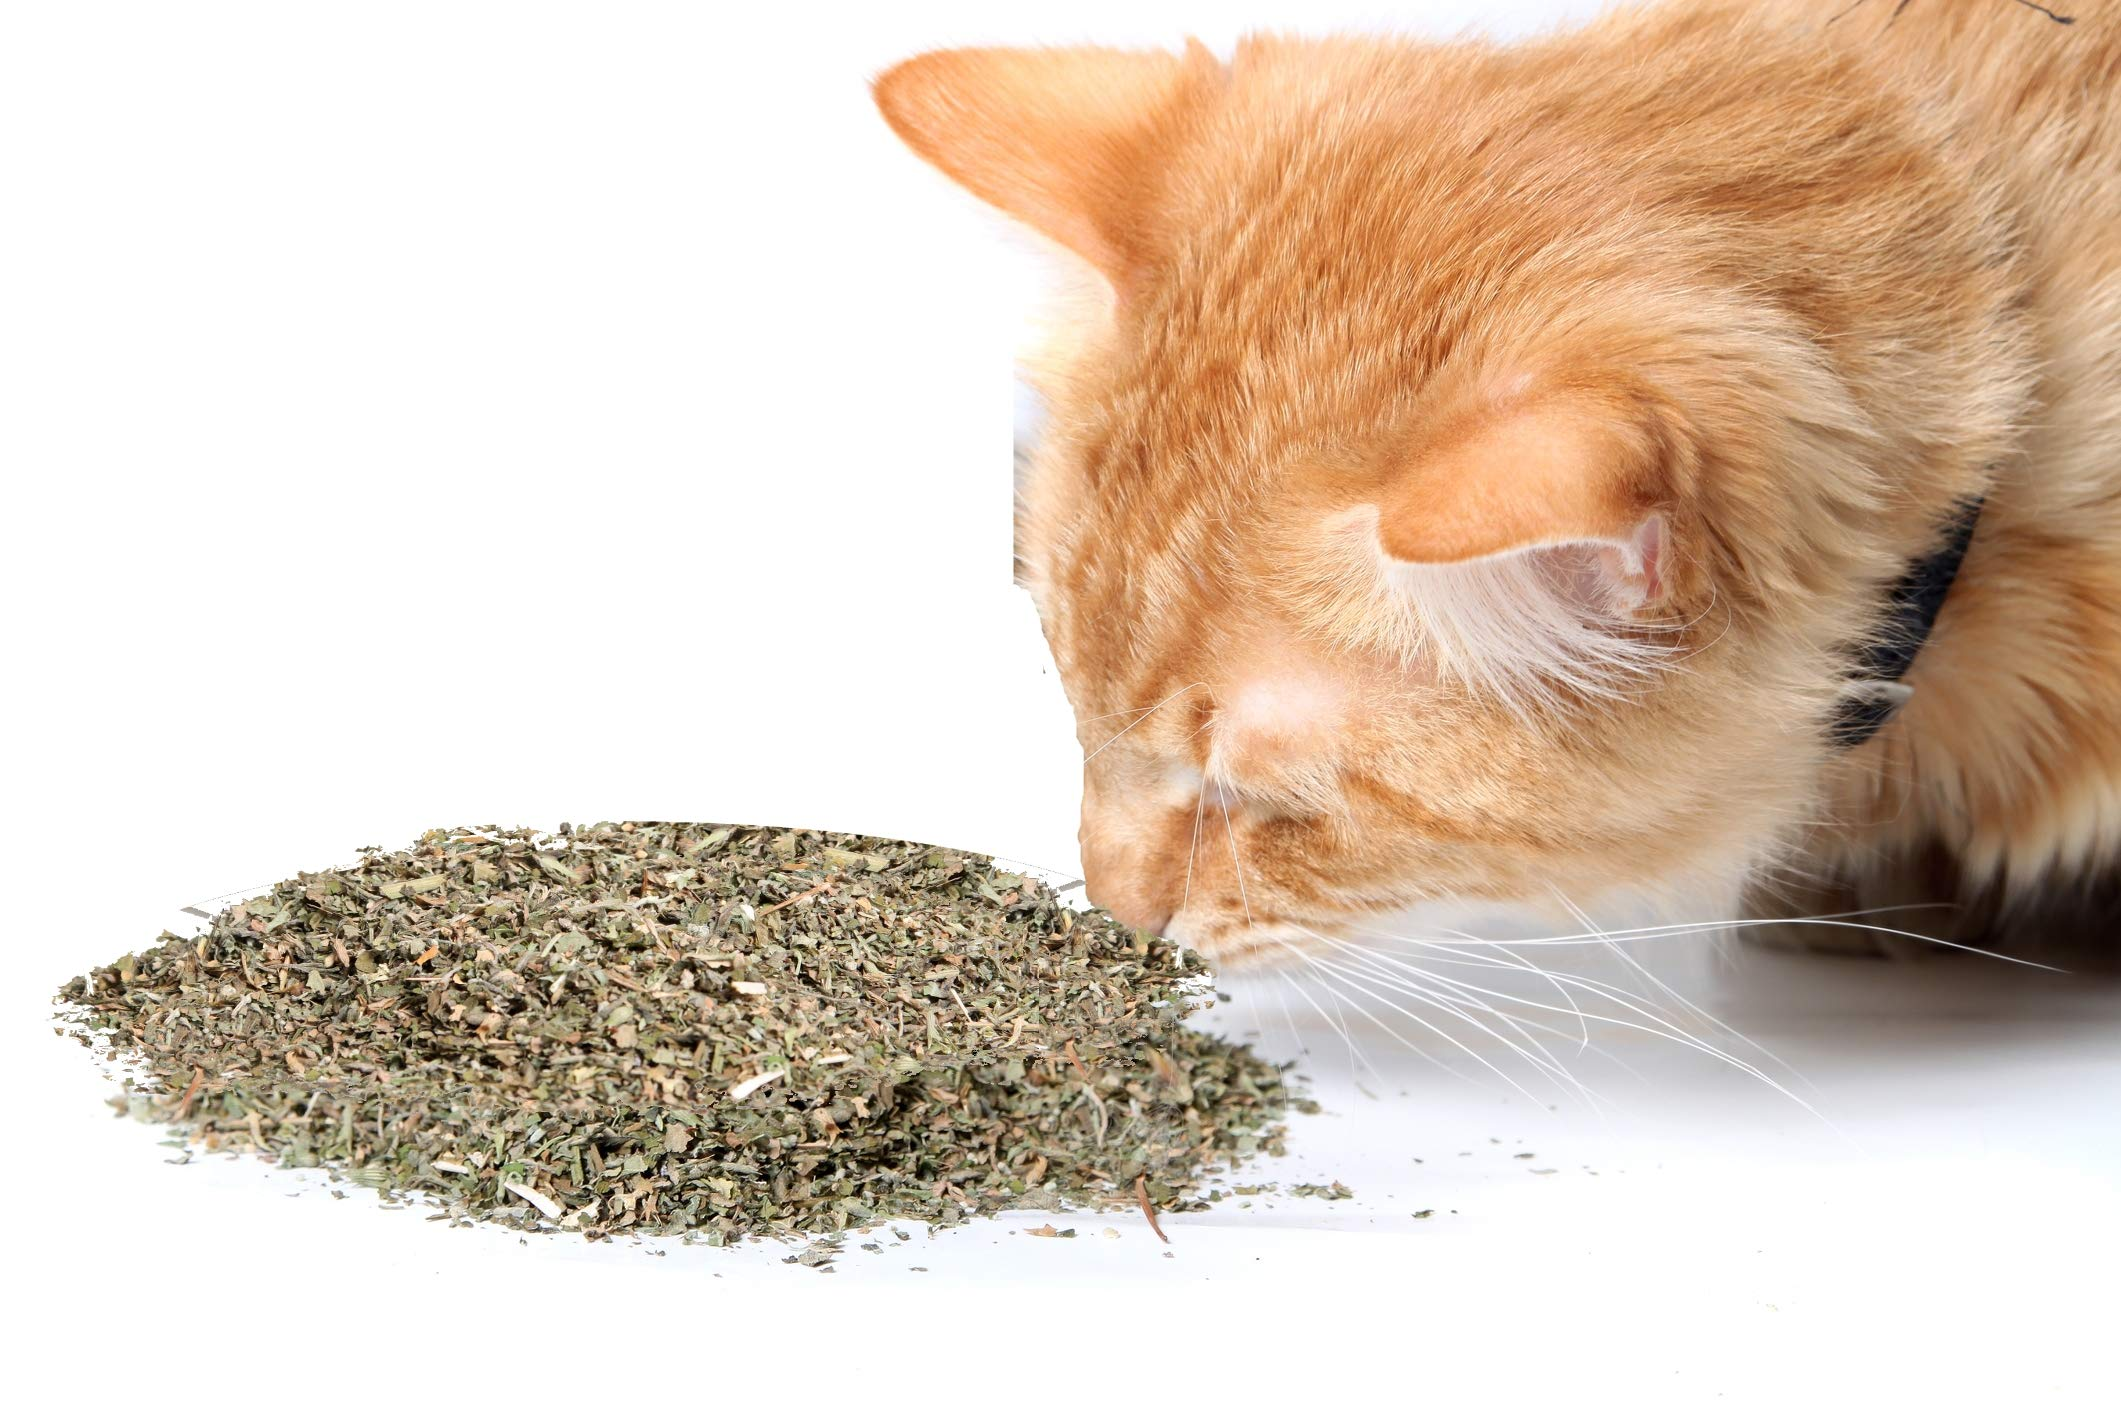 Cat Crack Organic Catnip, Premium Safe Nip Blend, Infused with Maximum Potency Your Kitty Will be Sure to Go Crazy for (10 Cups) by Cat Crack